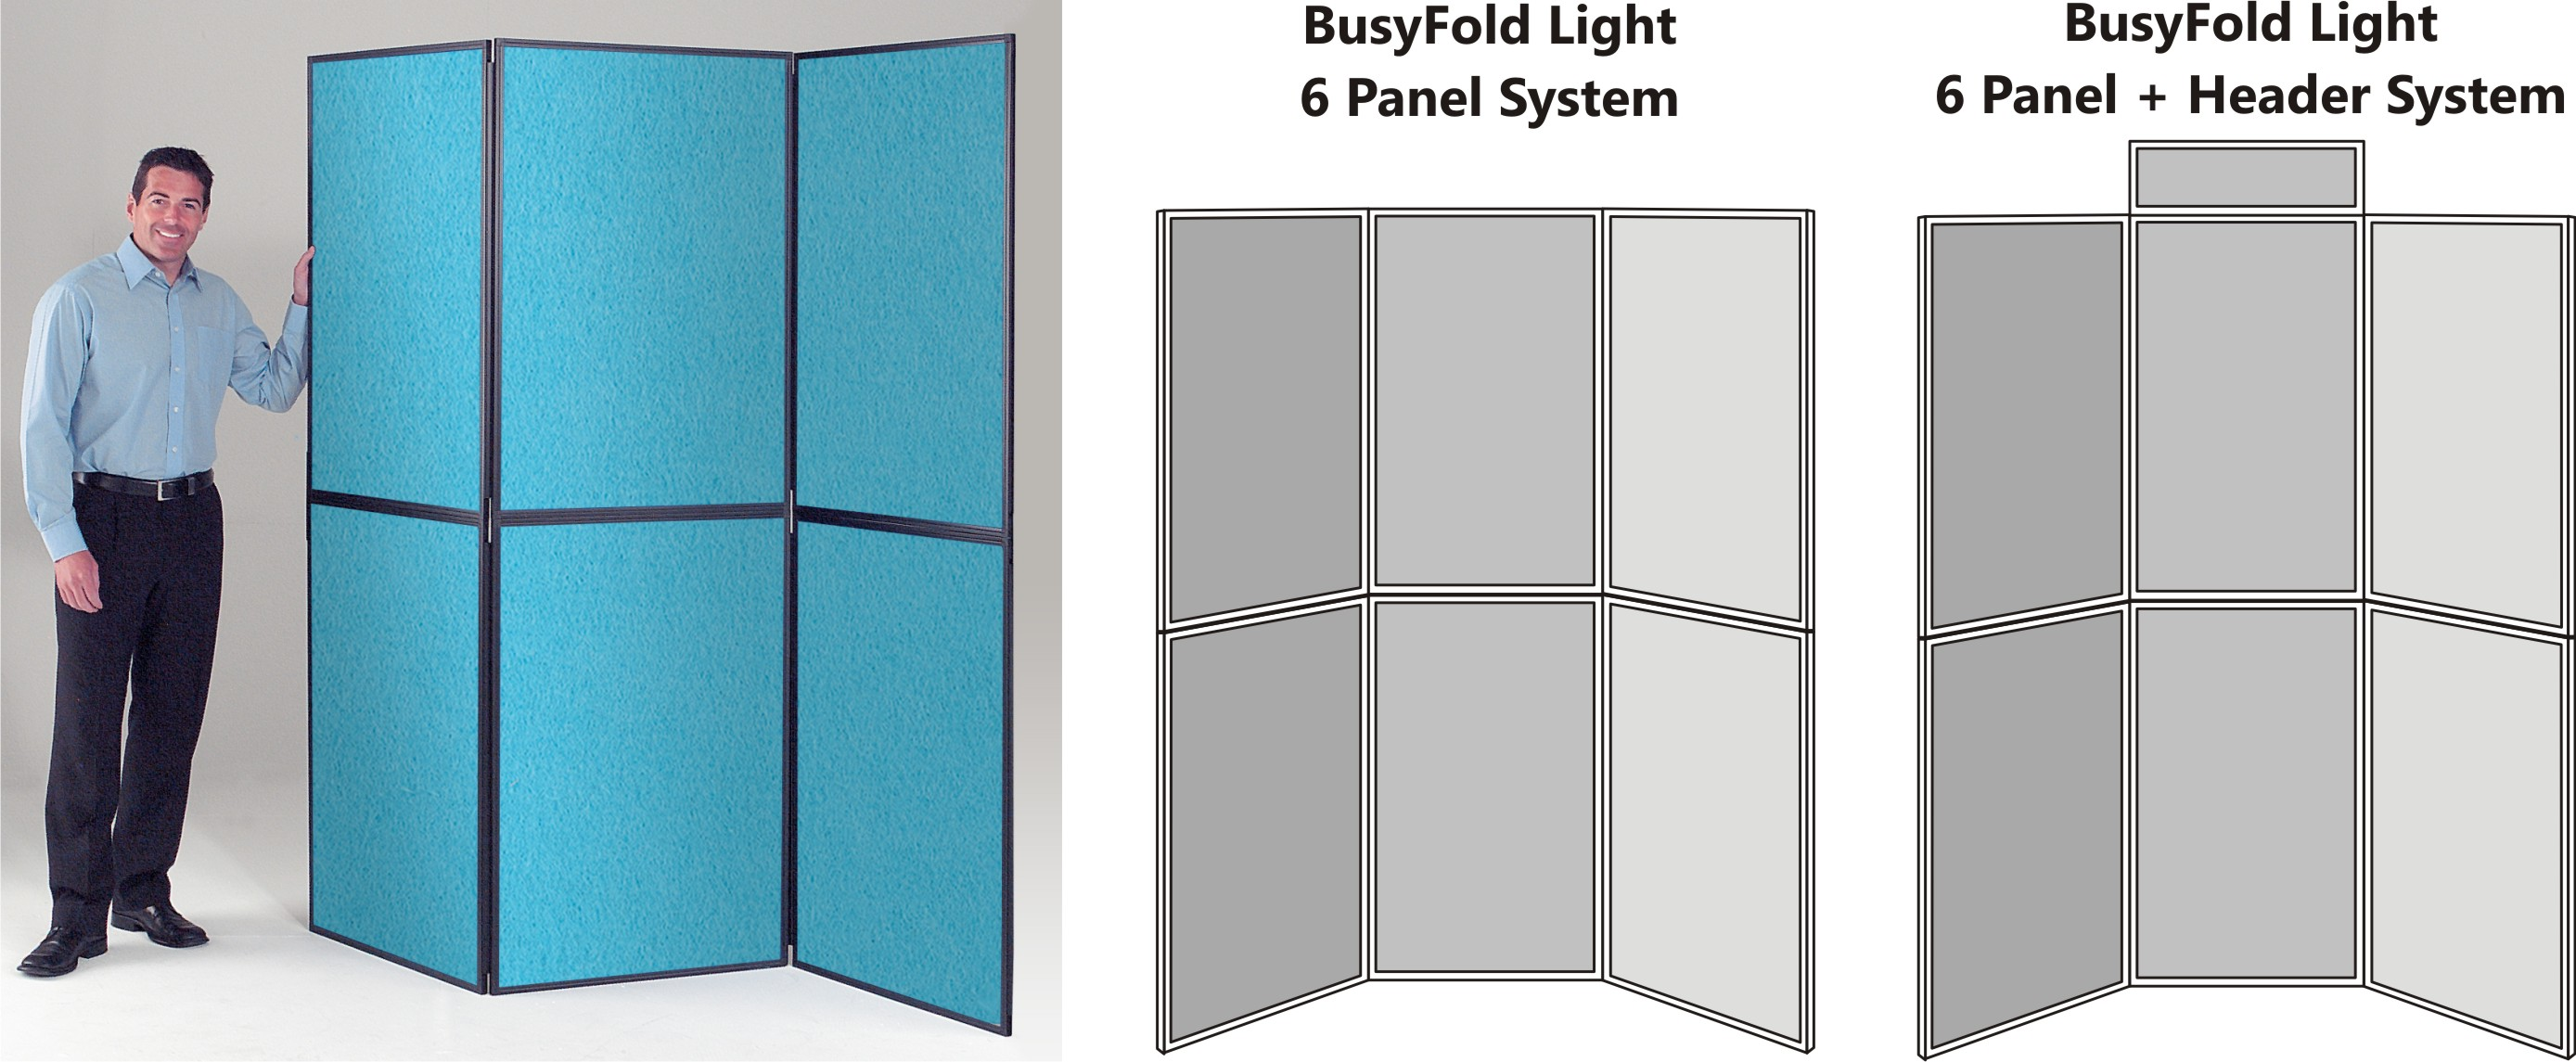 BusyFold Light XL 6 Panel Display System